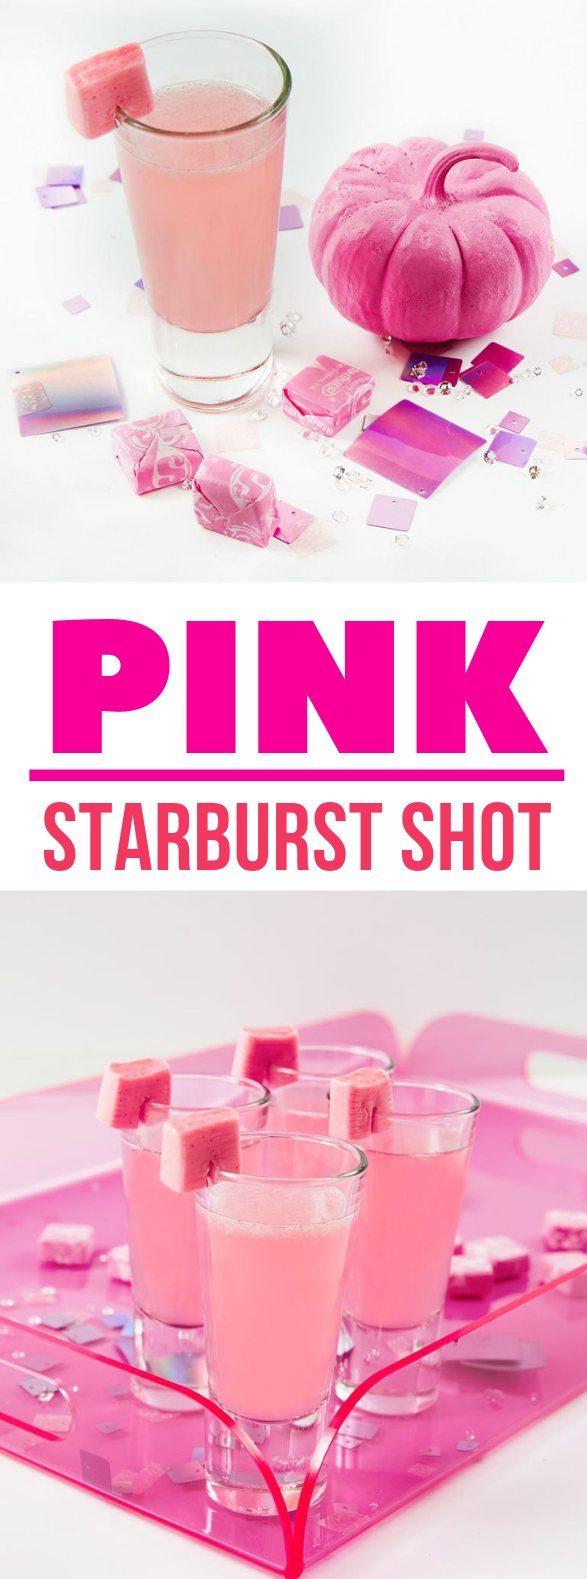 You Must Make This Pink Starburst Shot for Halloween Pregaming #drinks  #vodka